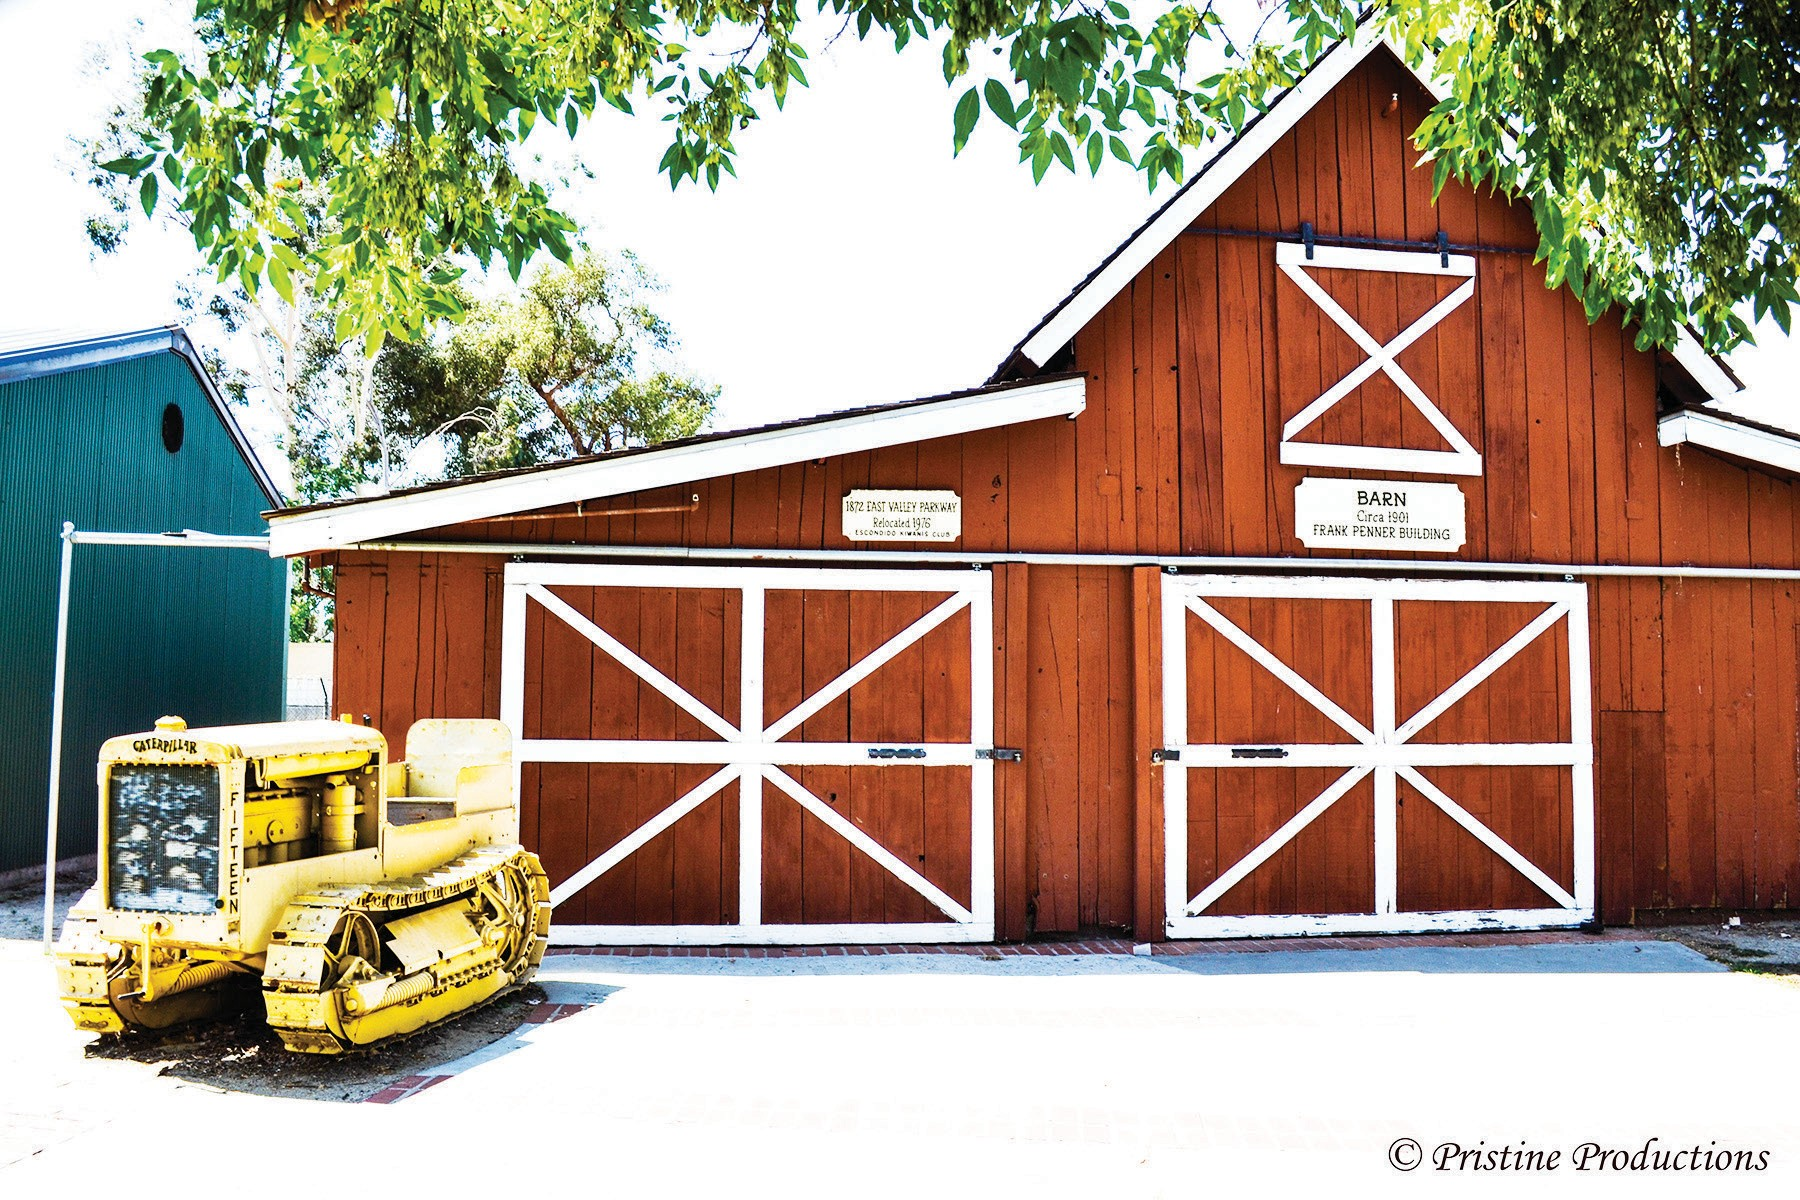 The Barn, where you find a number of historical farming implements from the past. On Saturdays you will also see a blacksmith at work.